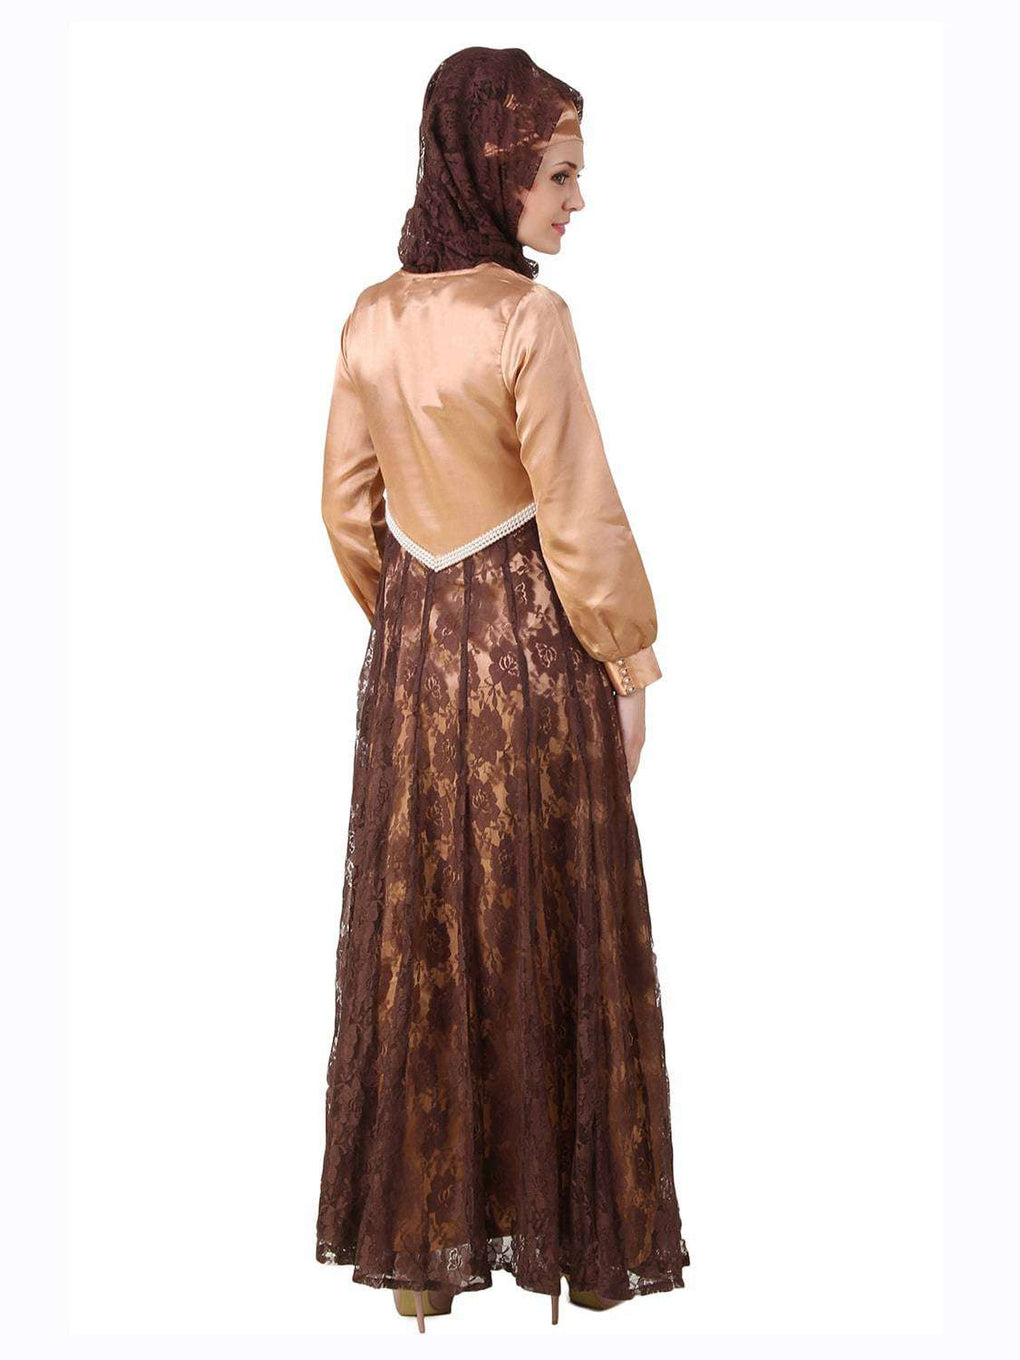 Mahrosh Copper Satin & Brown Flower Net Abaya Back